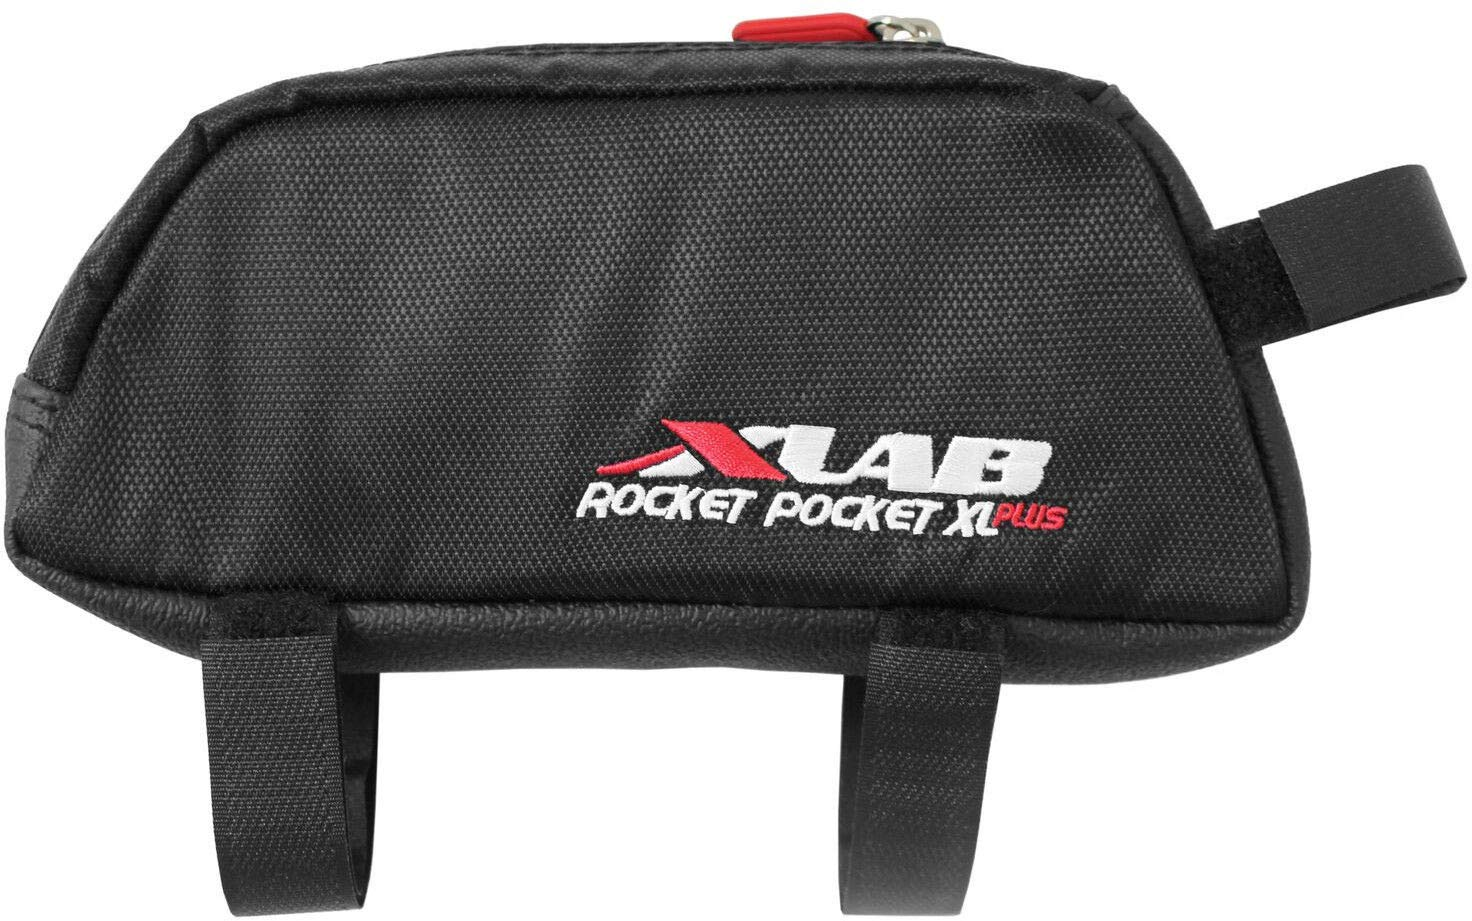 XLAB Rocket Pocket XL Plus